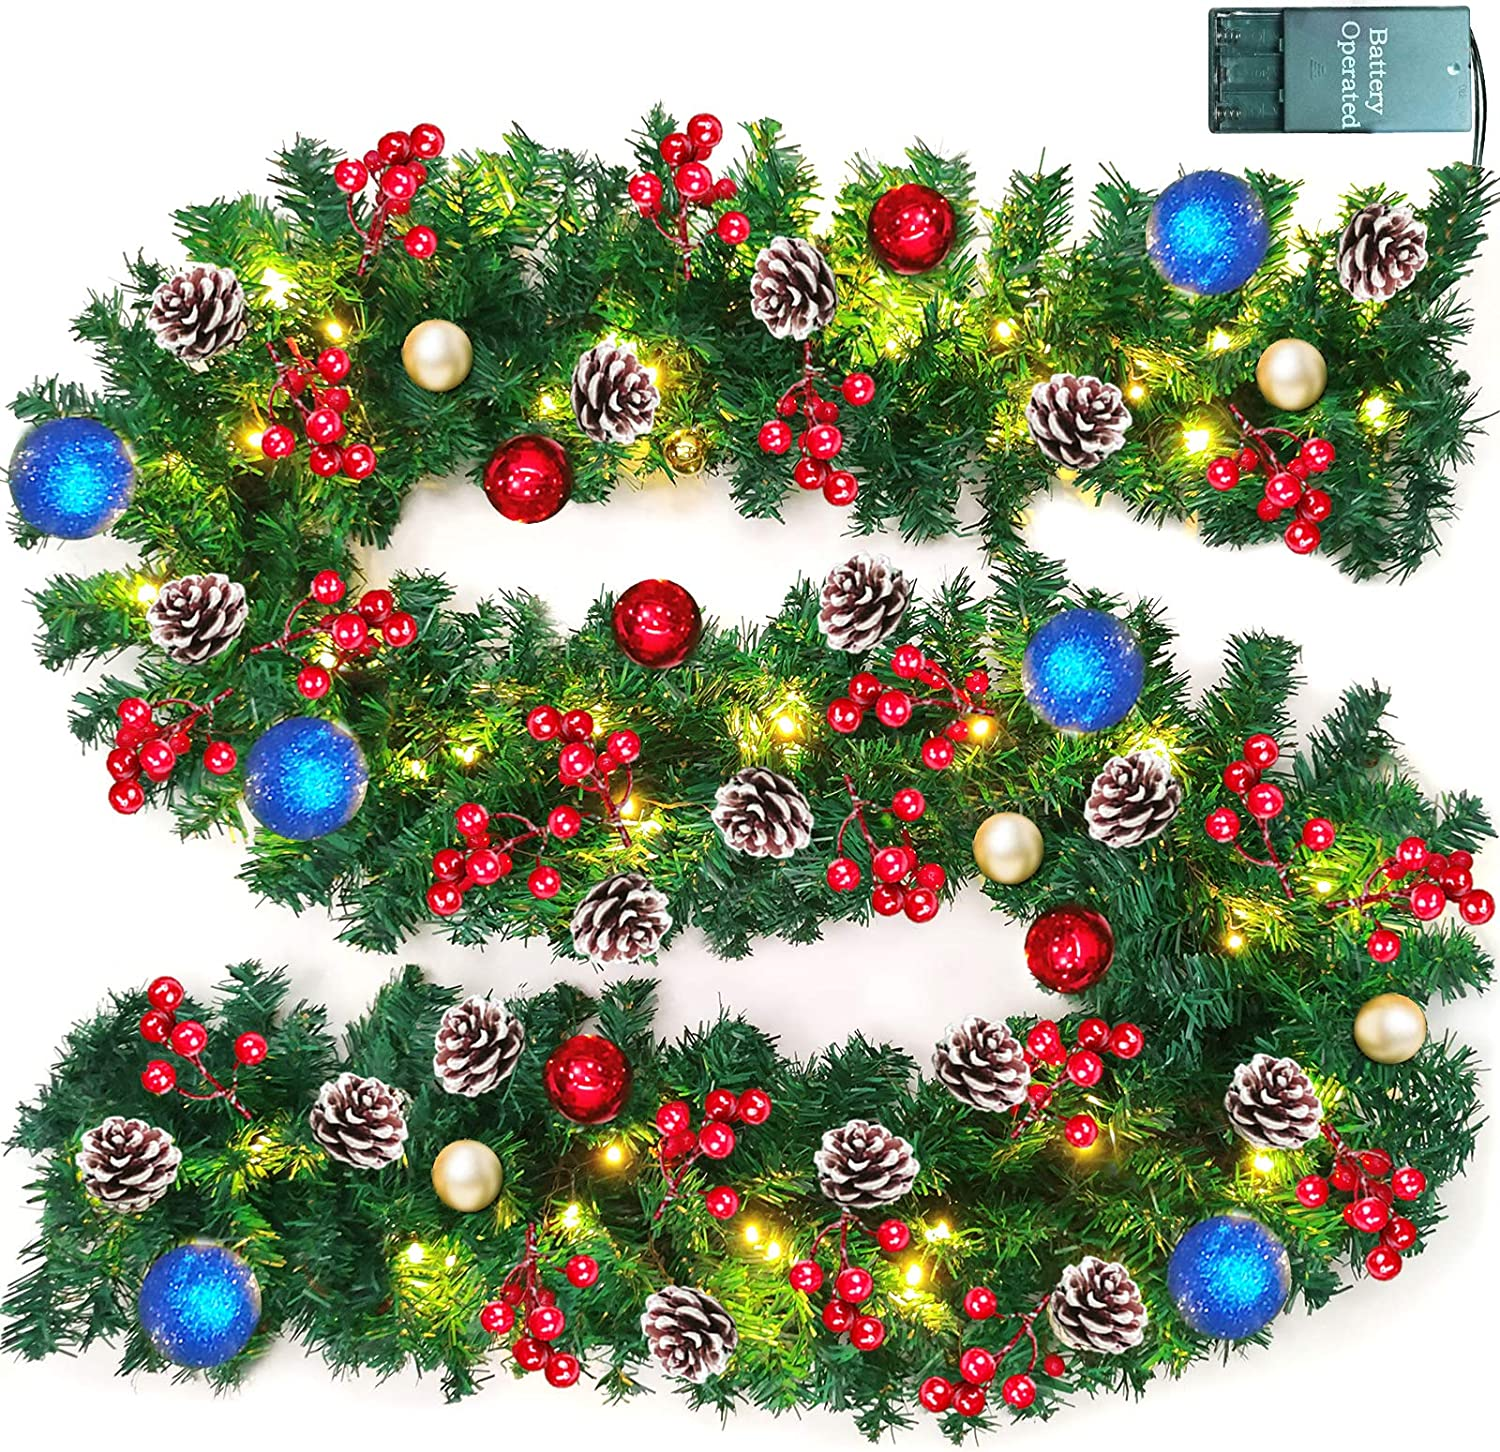 TURNMEON 9 FT Christmas Garland Decor Directly managed Outlet SALE store Lights Glitter O Ball with